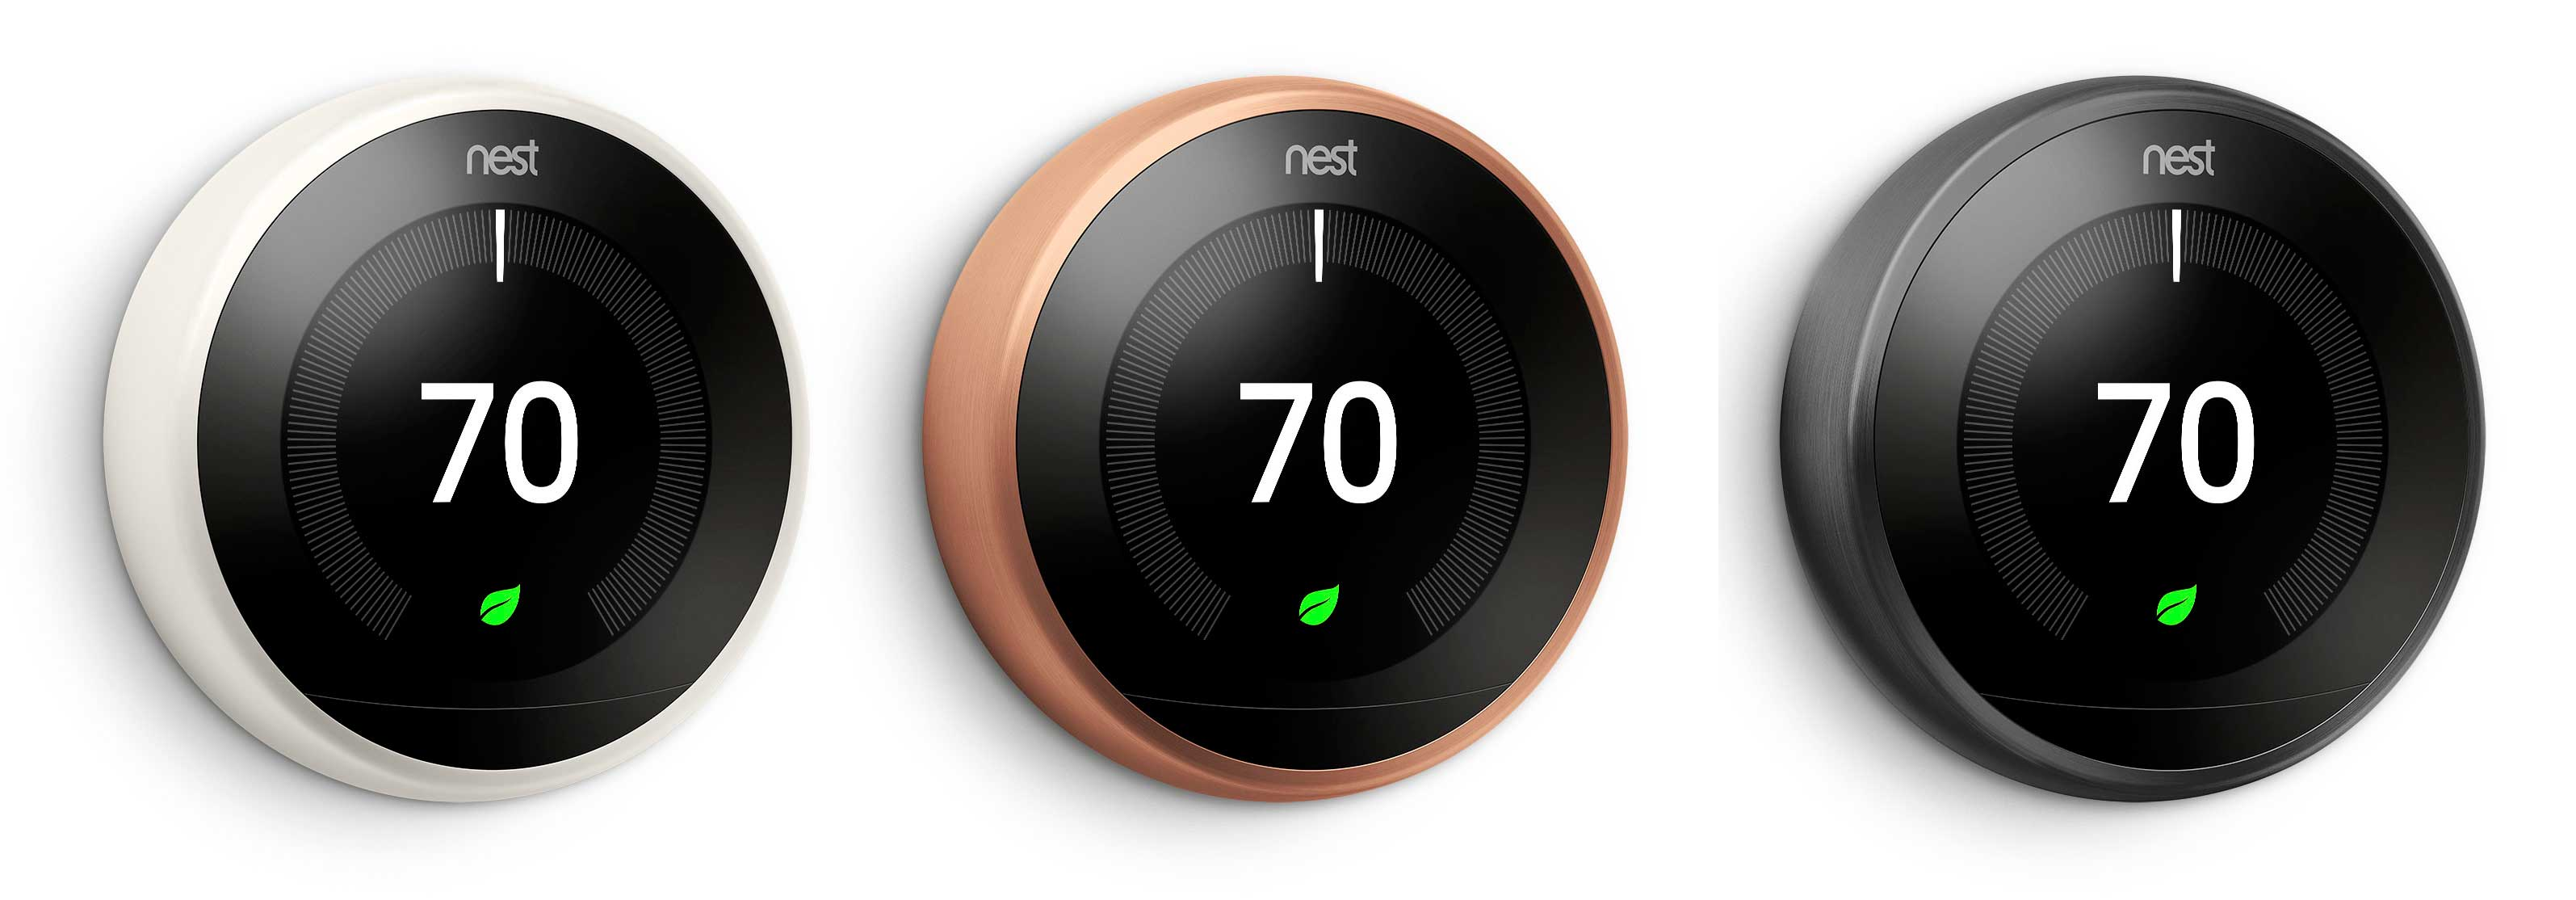 nest adds automatic door detection and animated push. Black Bedroom Furniture Sets. Home Design Ideas